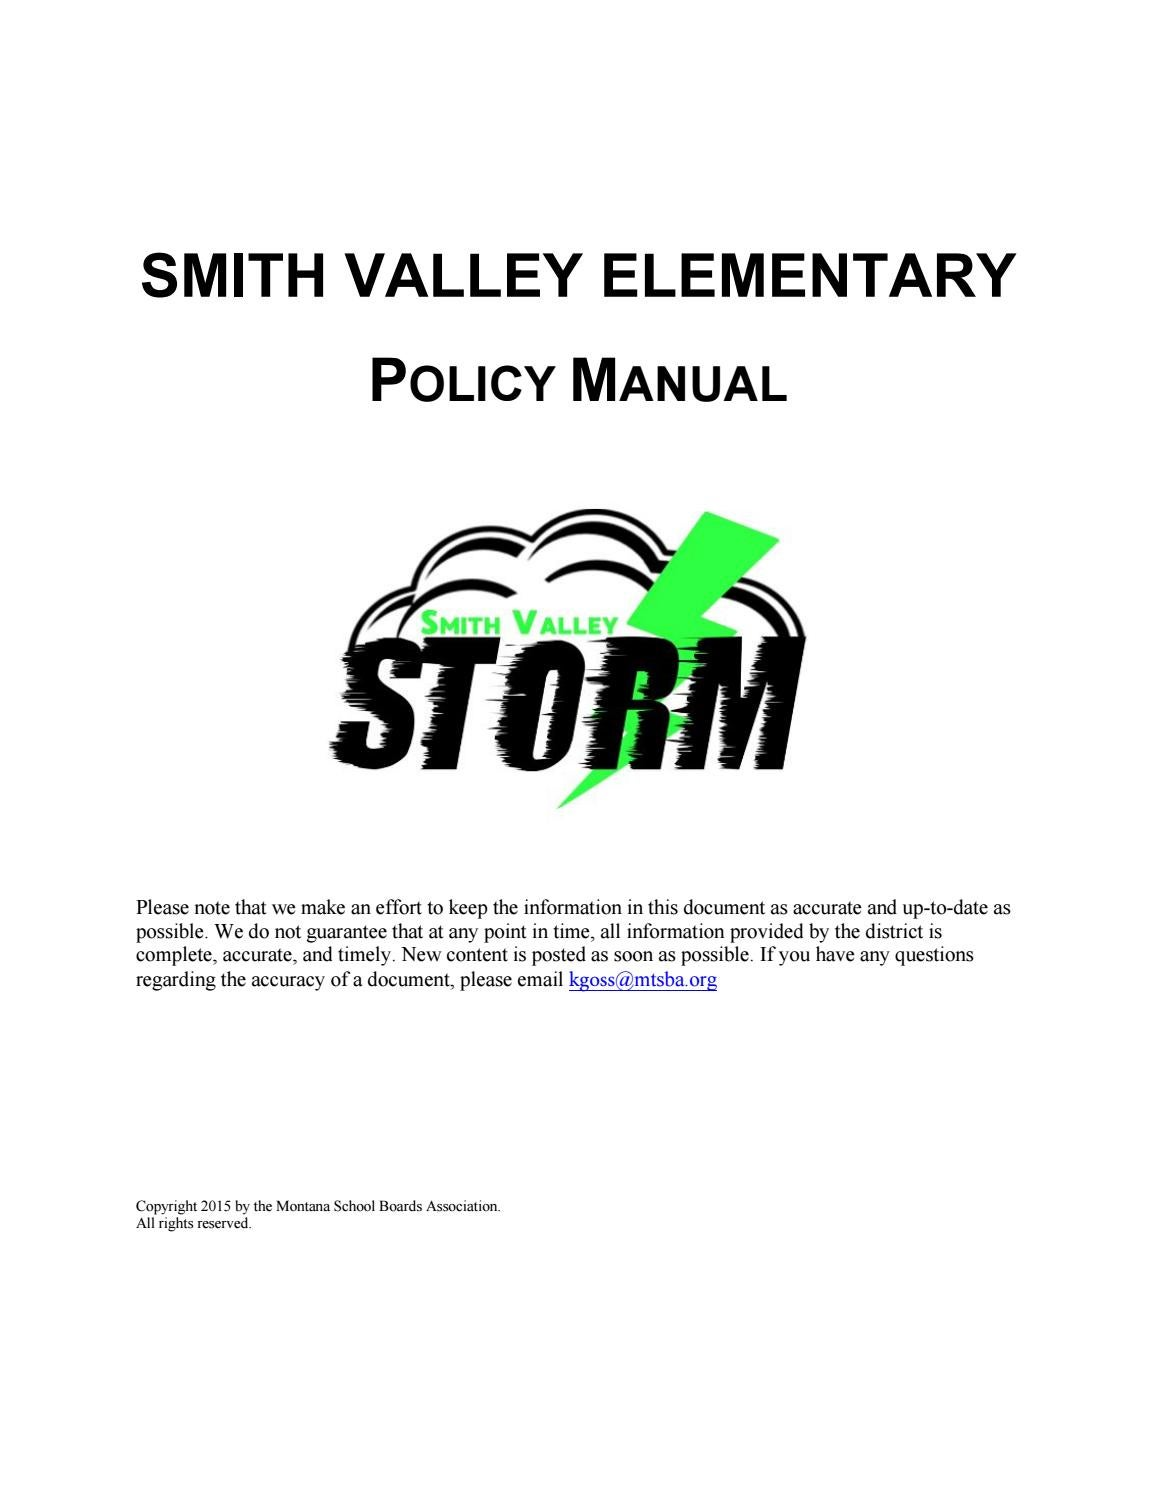 Smith Valley Elementary Policy Manual by Montana School